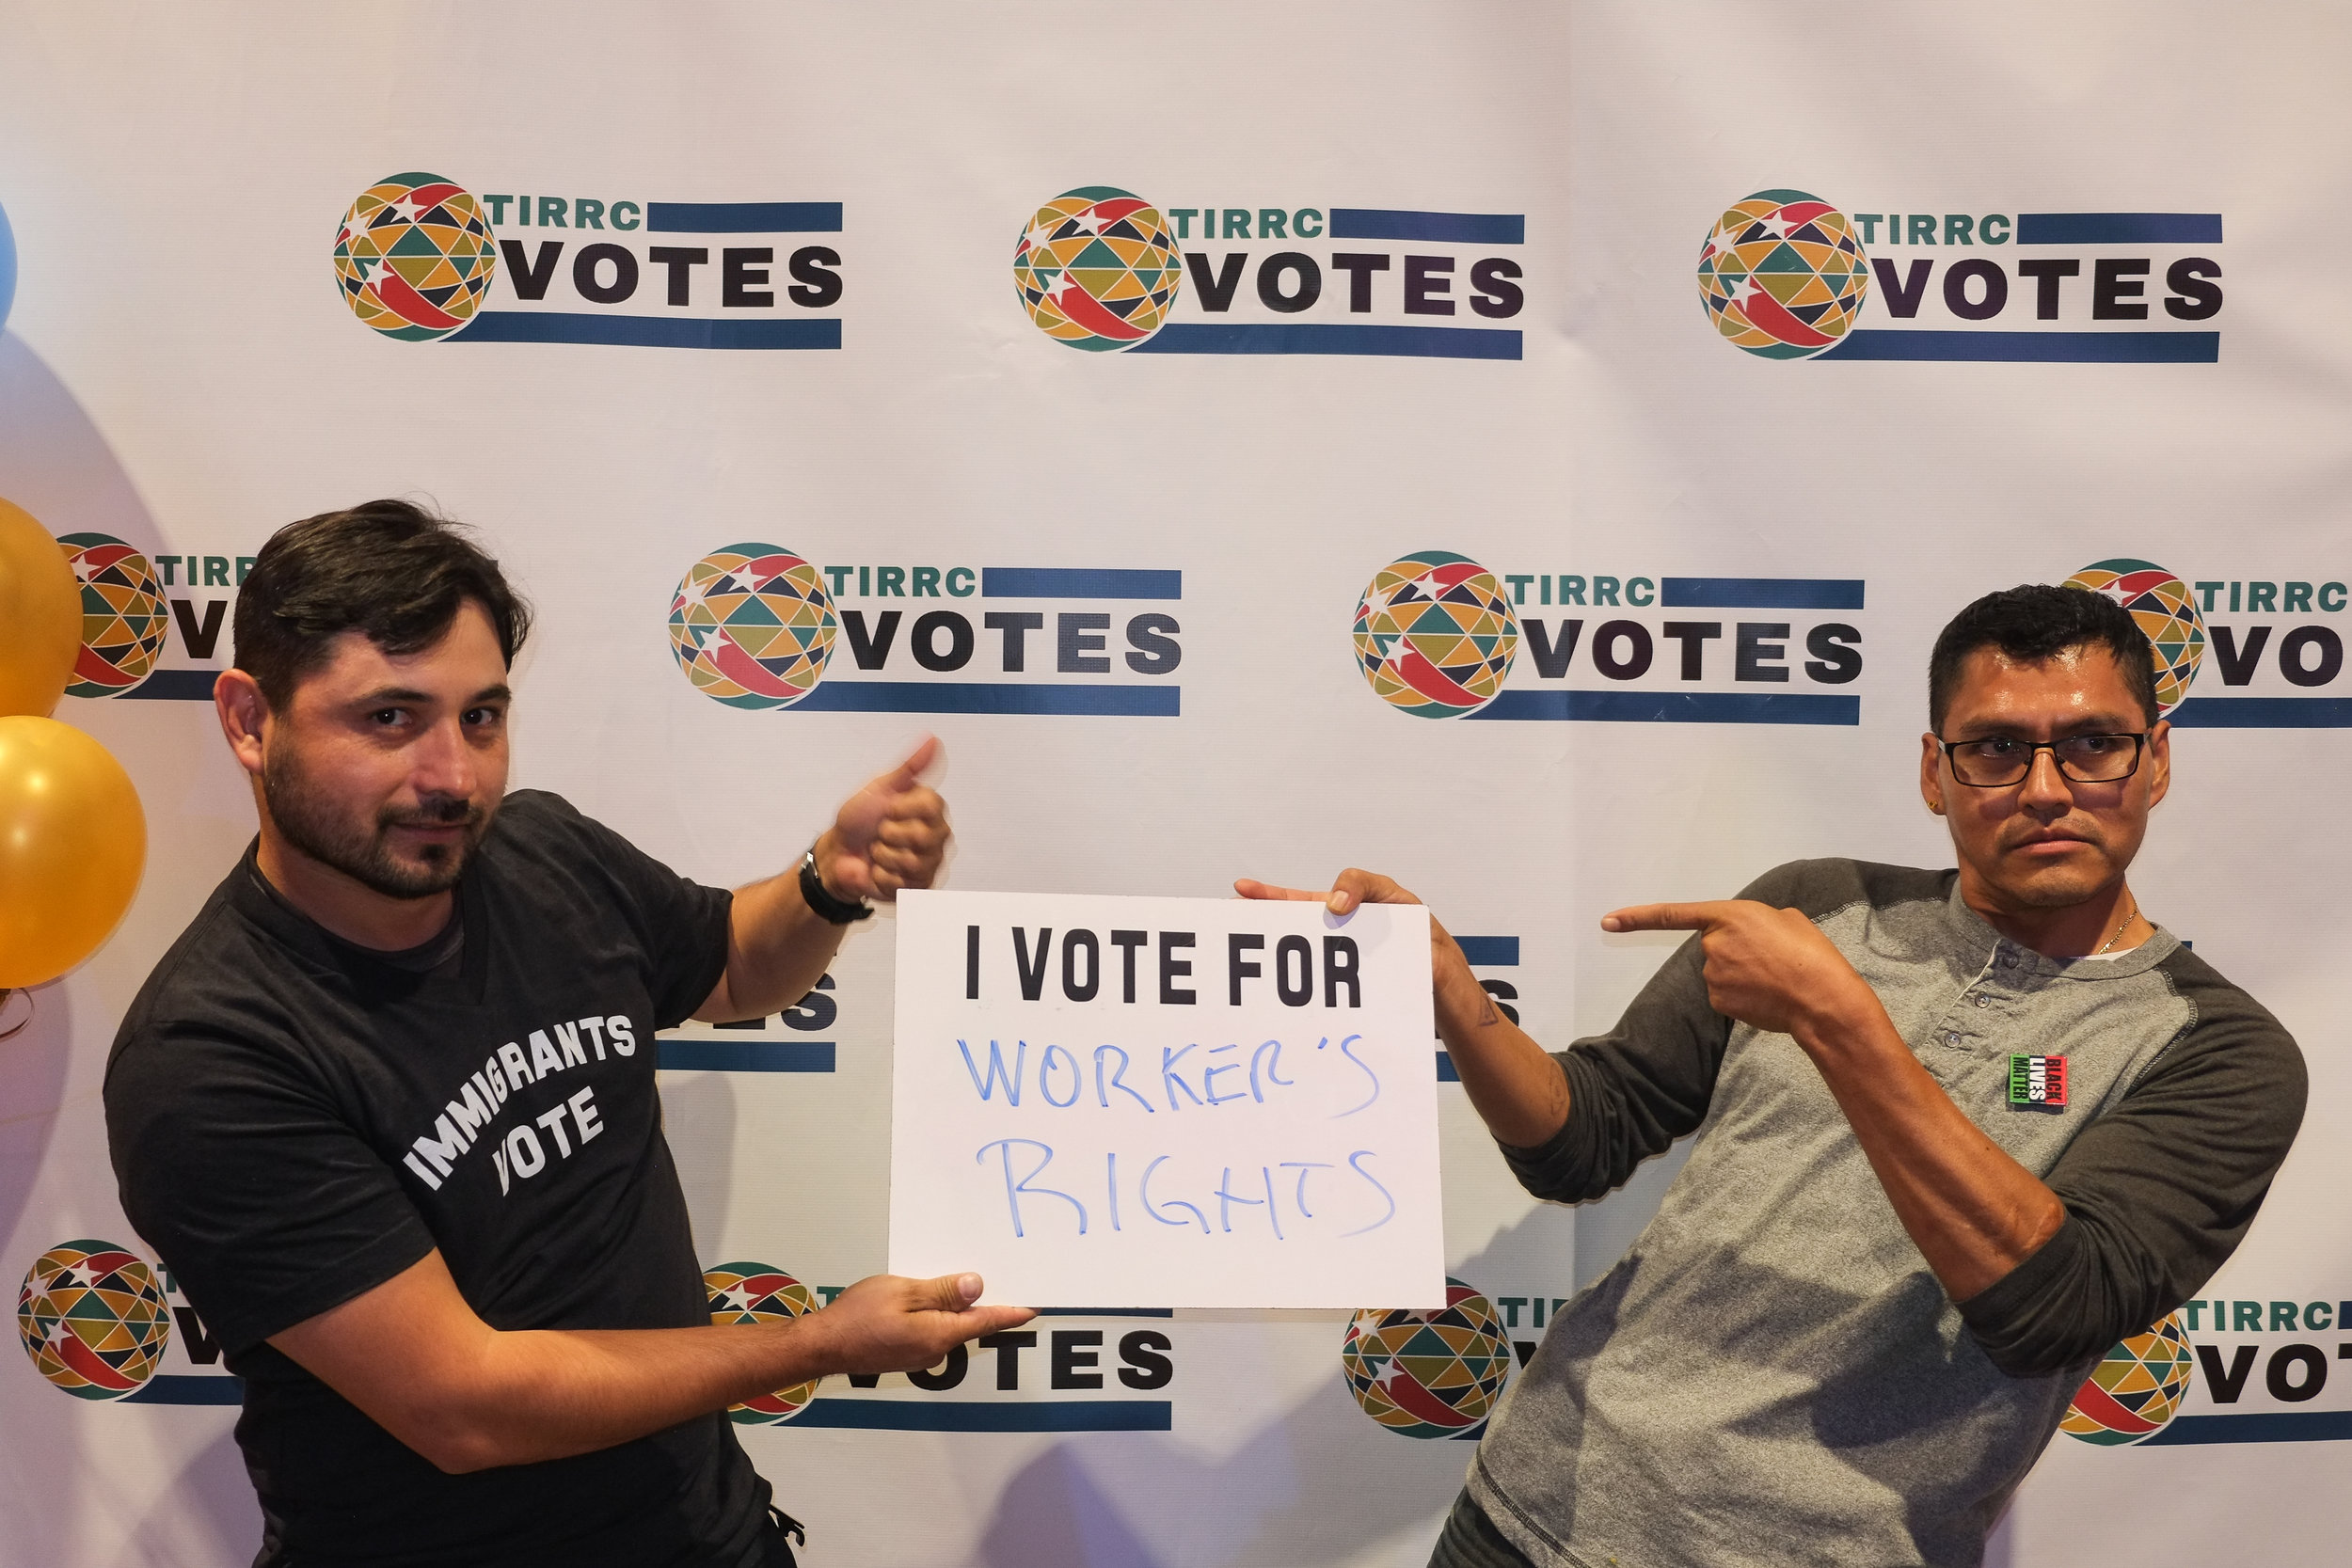 TIRRCVotes-PhotoBooth-65.jpg